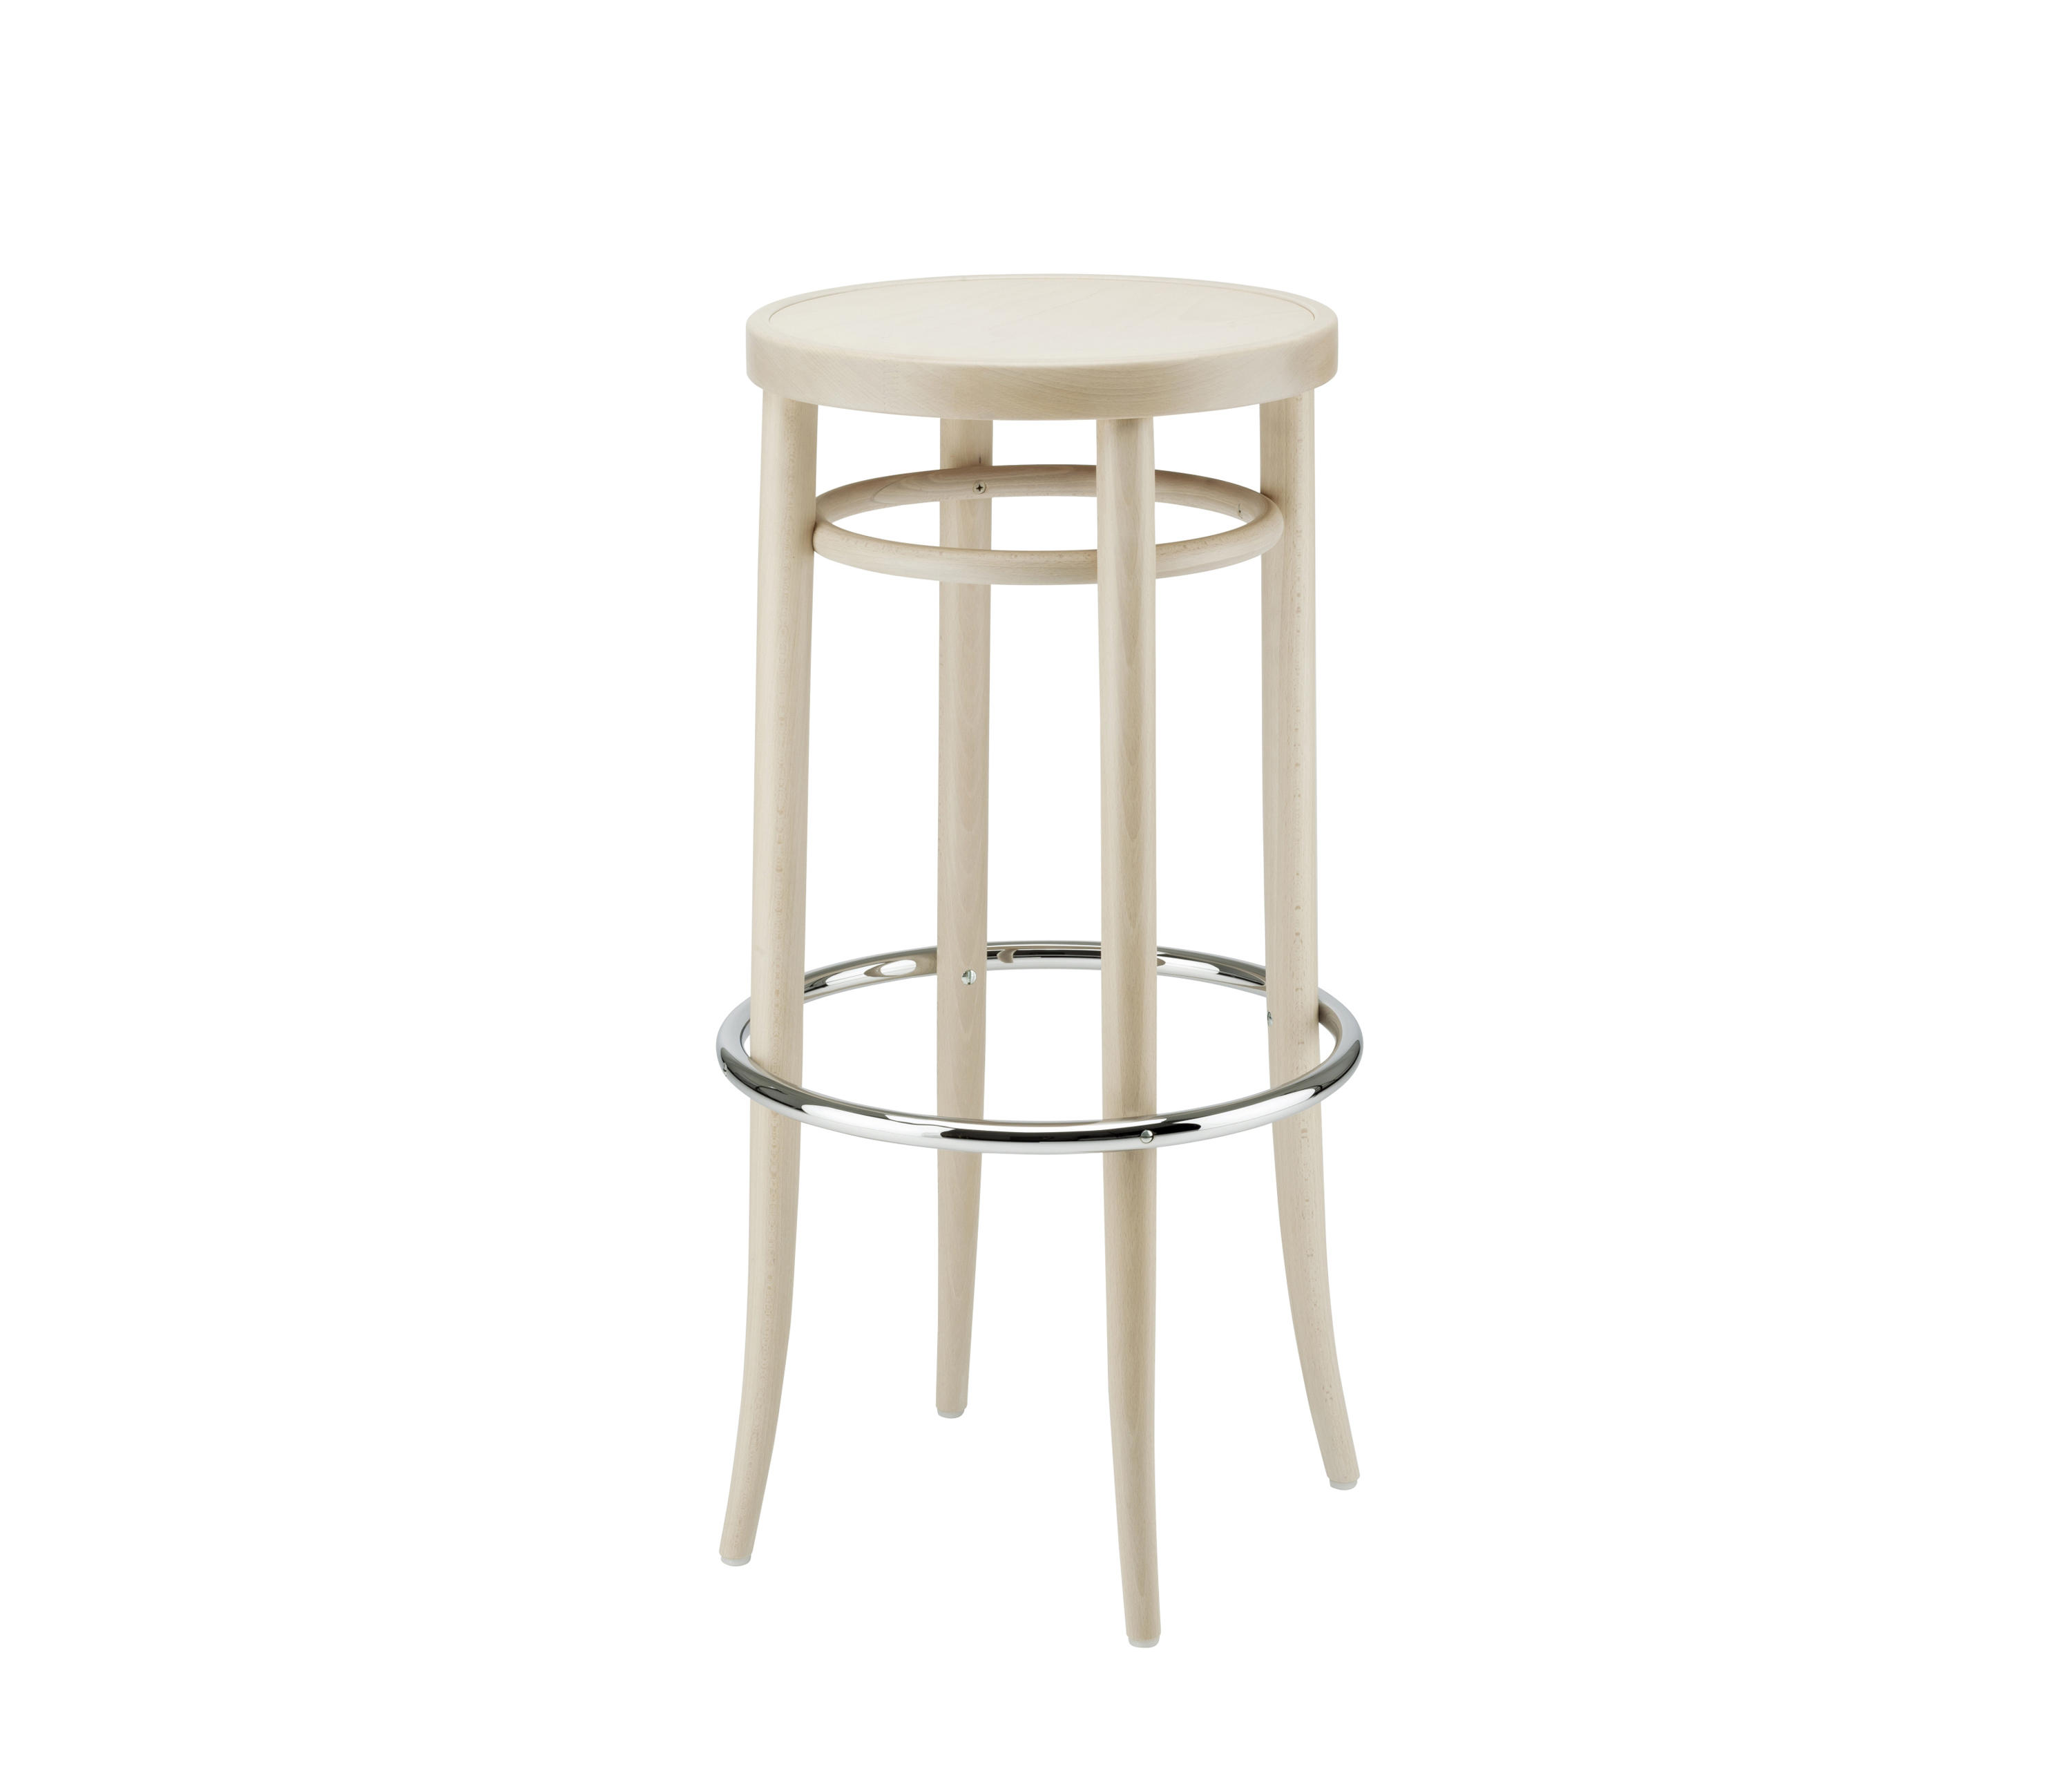 Tabouret De Bar Thonet 204 Mh Tabourets De Bar De Thonet Architonic